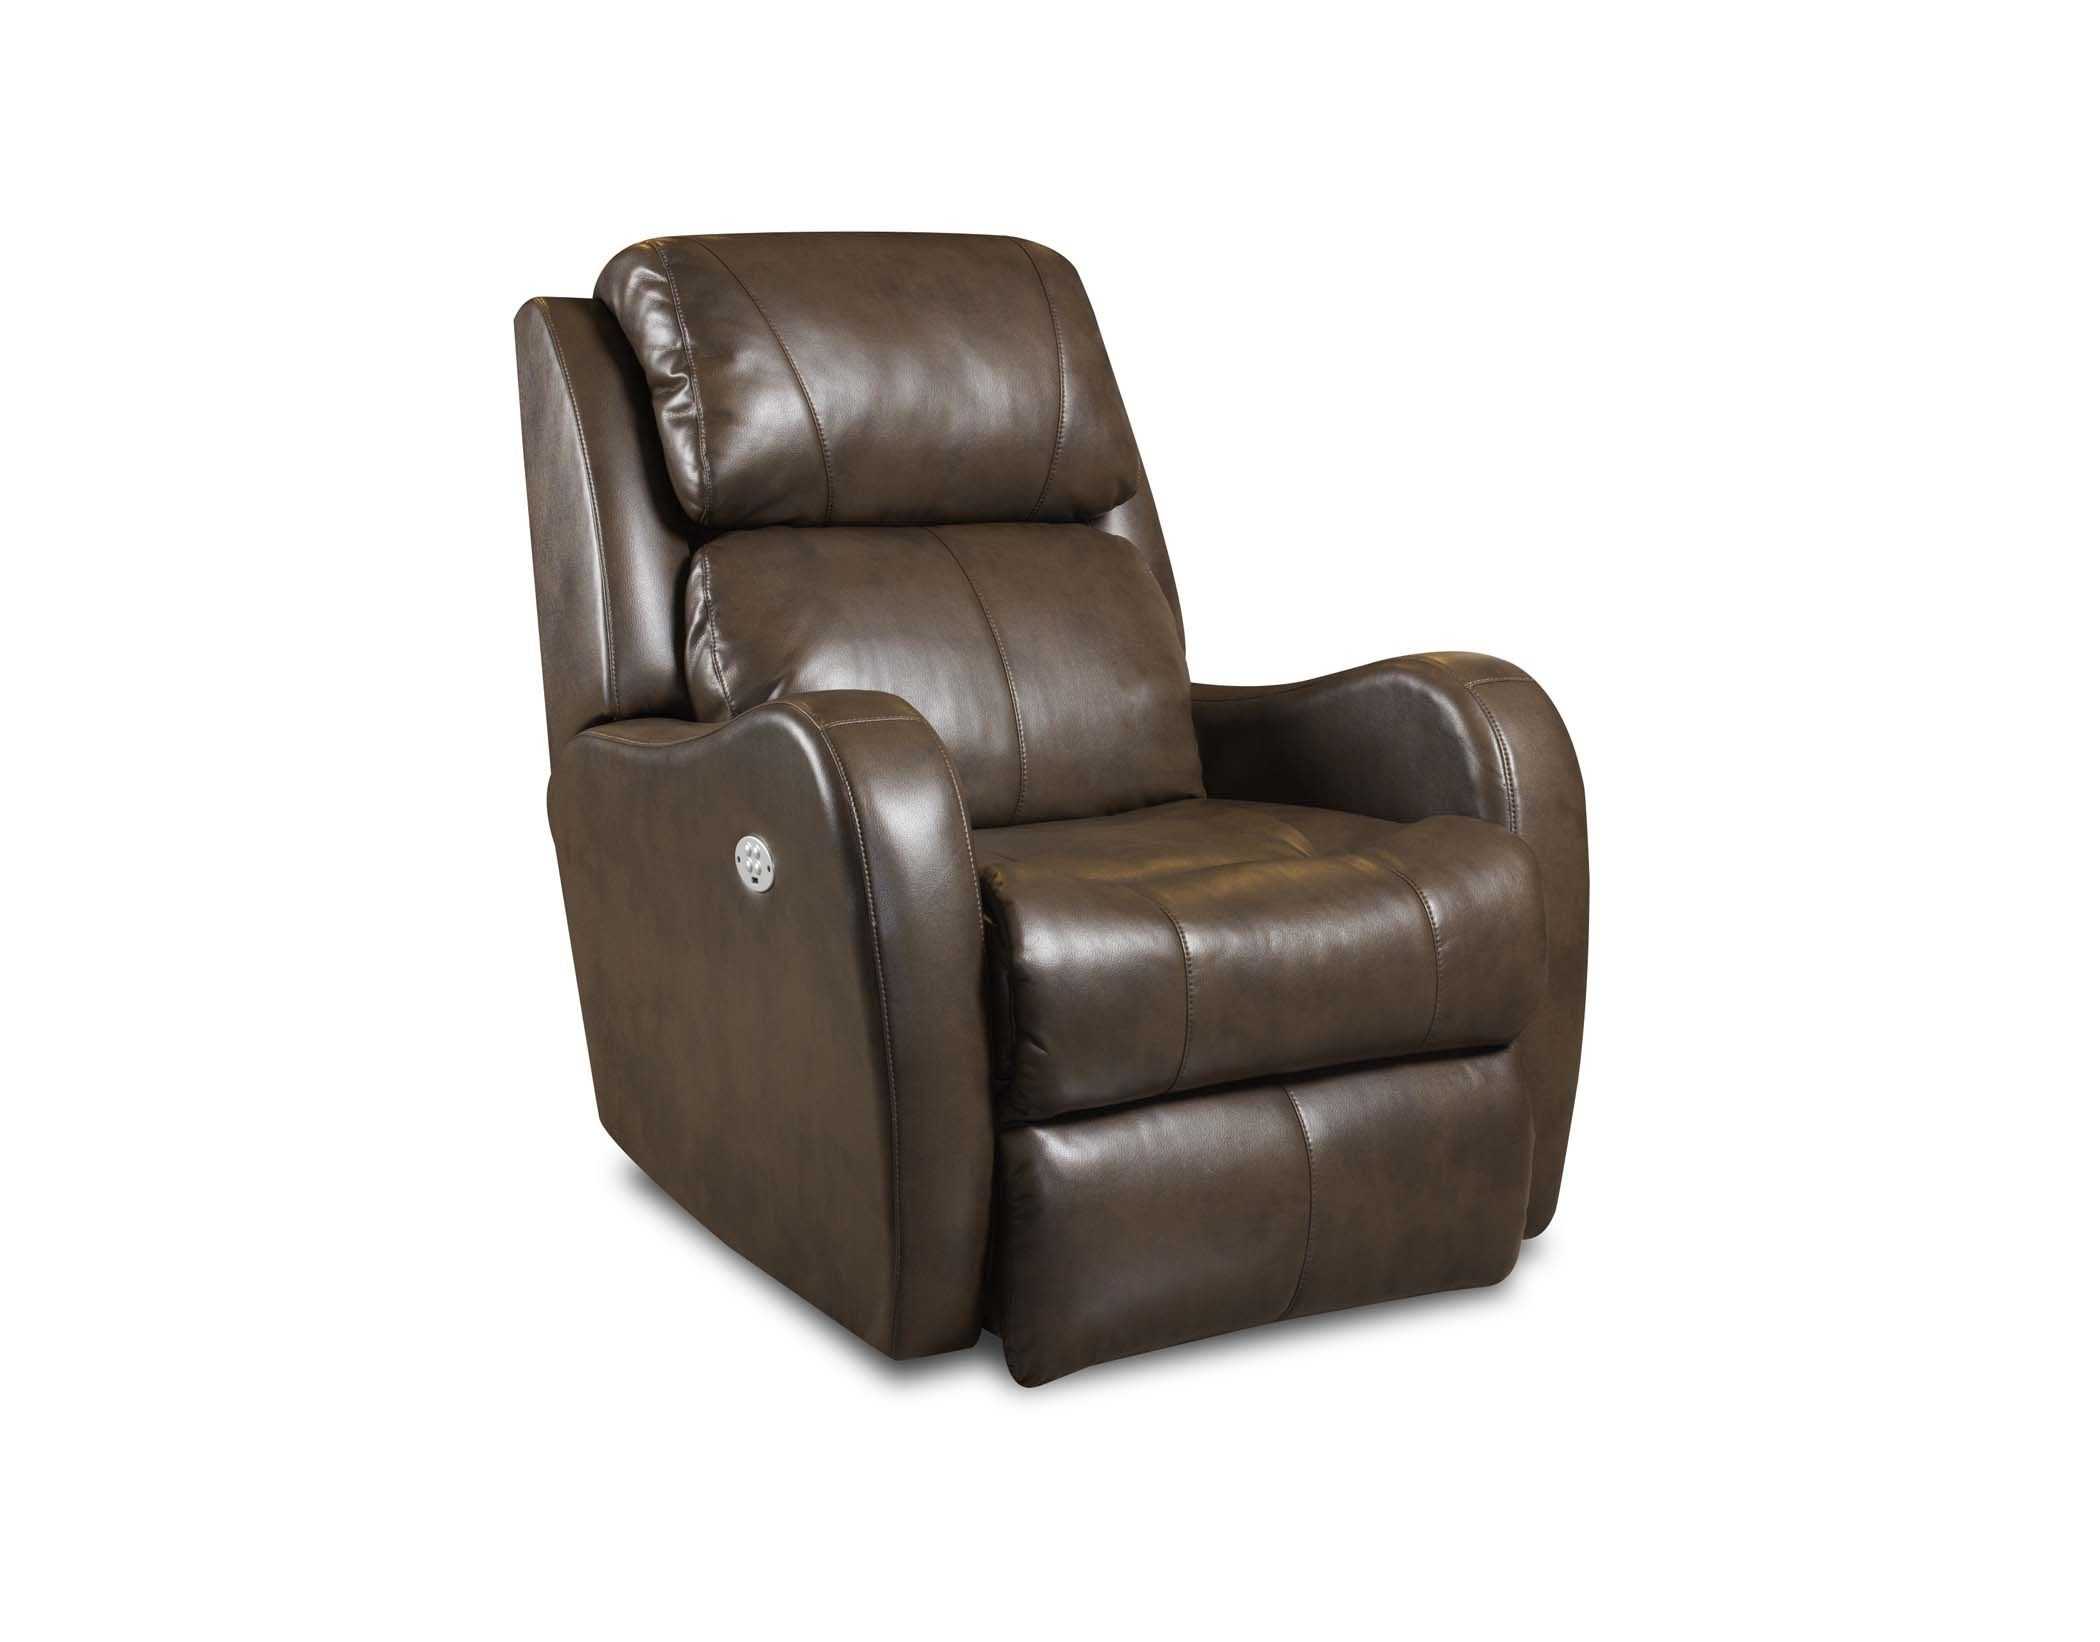 Siri Power Rocking Recliner 5139p Recliners From Southern Motion At Wall Hugger Recliners Leather Recliner Power Recliners